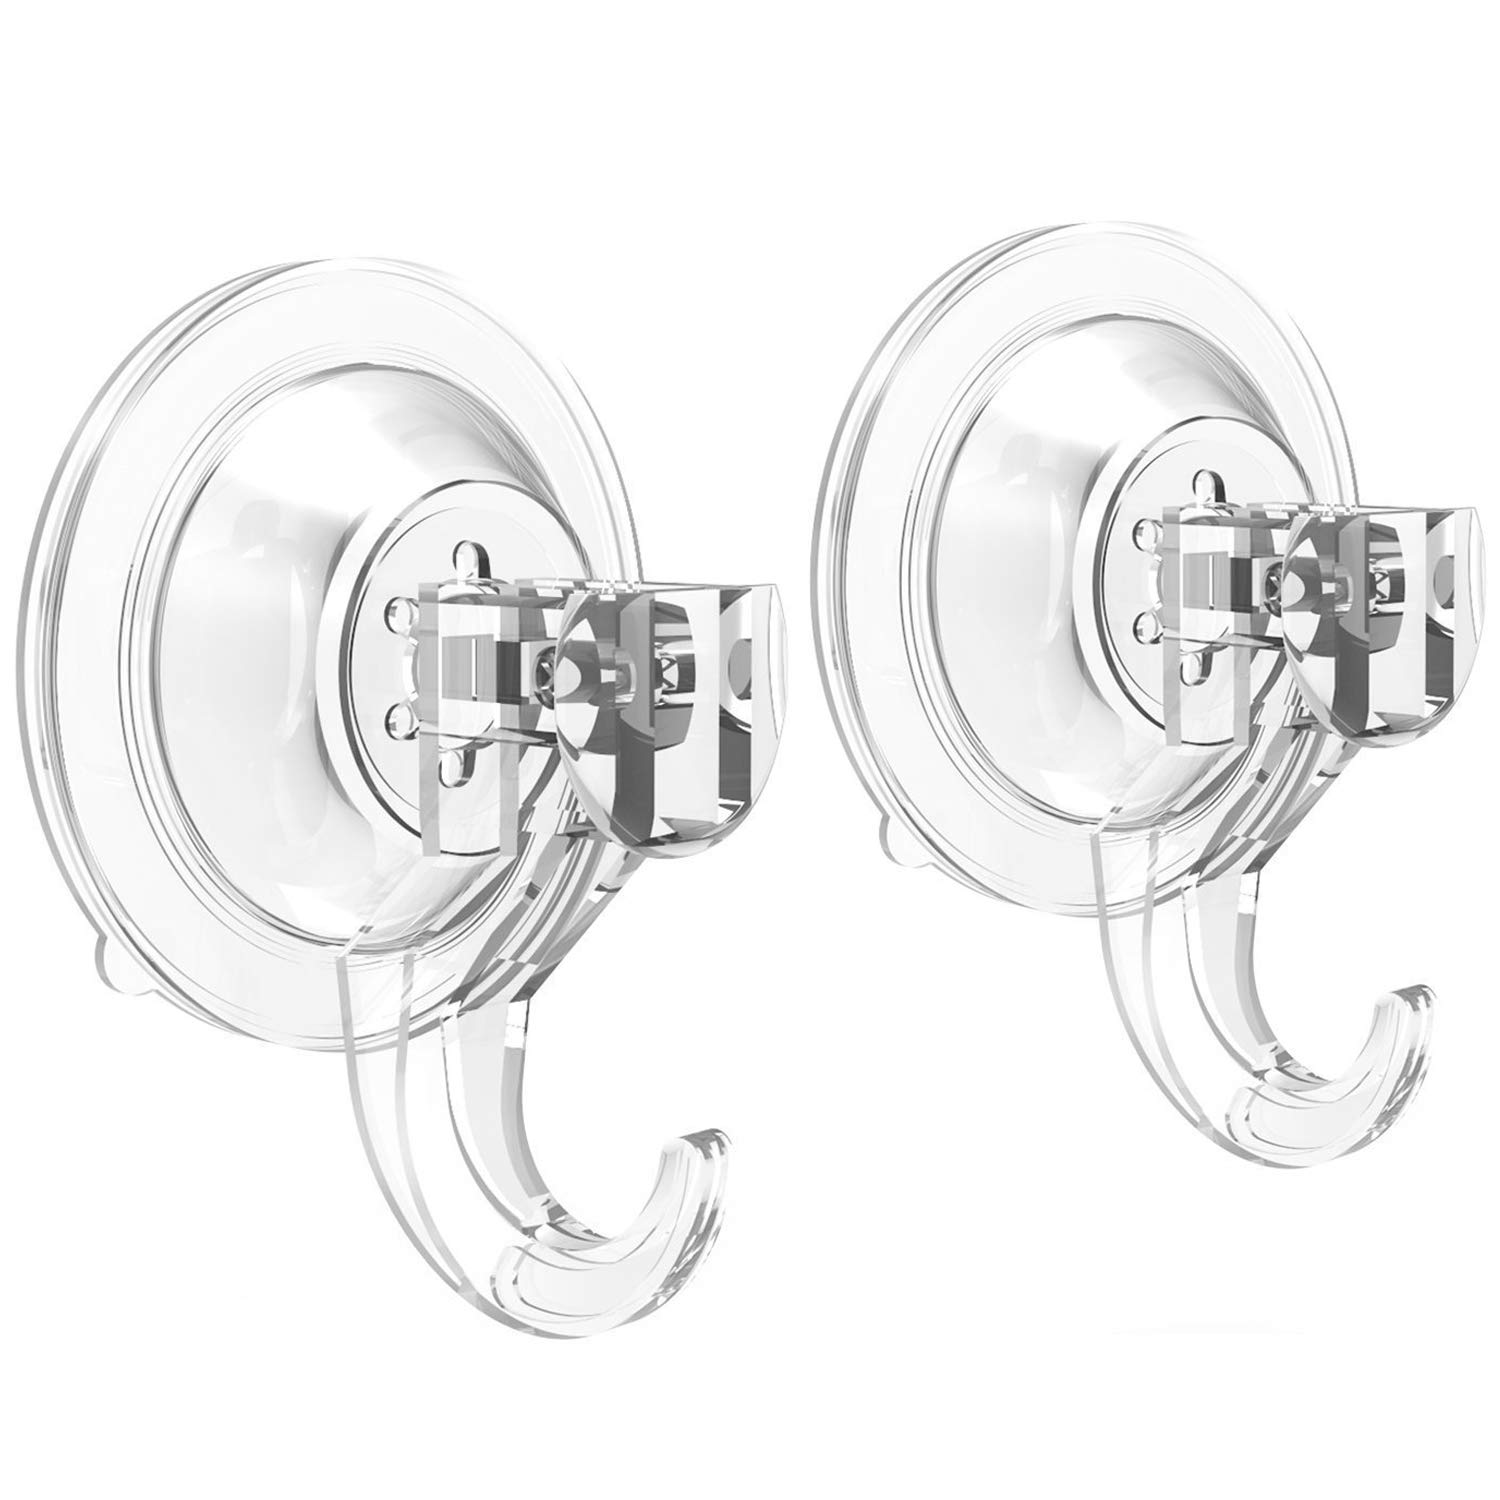 Suction Cup Hooks - Quntis Powerful SuperLock Suction Hooks (2 Pack) Heavy Duty Vacuum Suction Shower Hooks Kitchen Bathroom Wall Plastic Hooks Hanger for Towel Loofah wreath Robe Cloth Key Bag, Clear